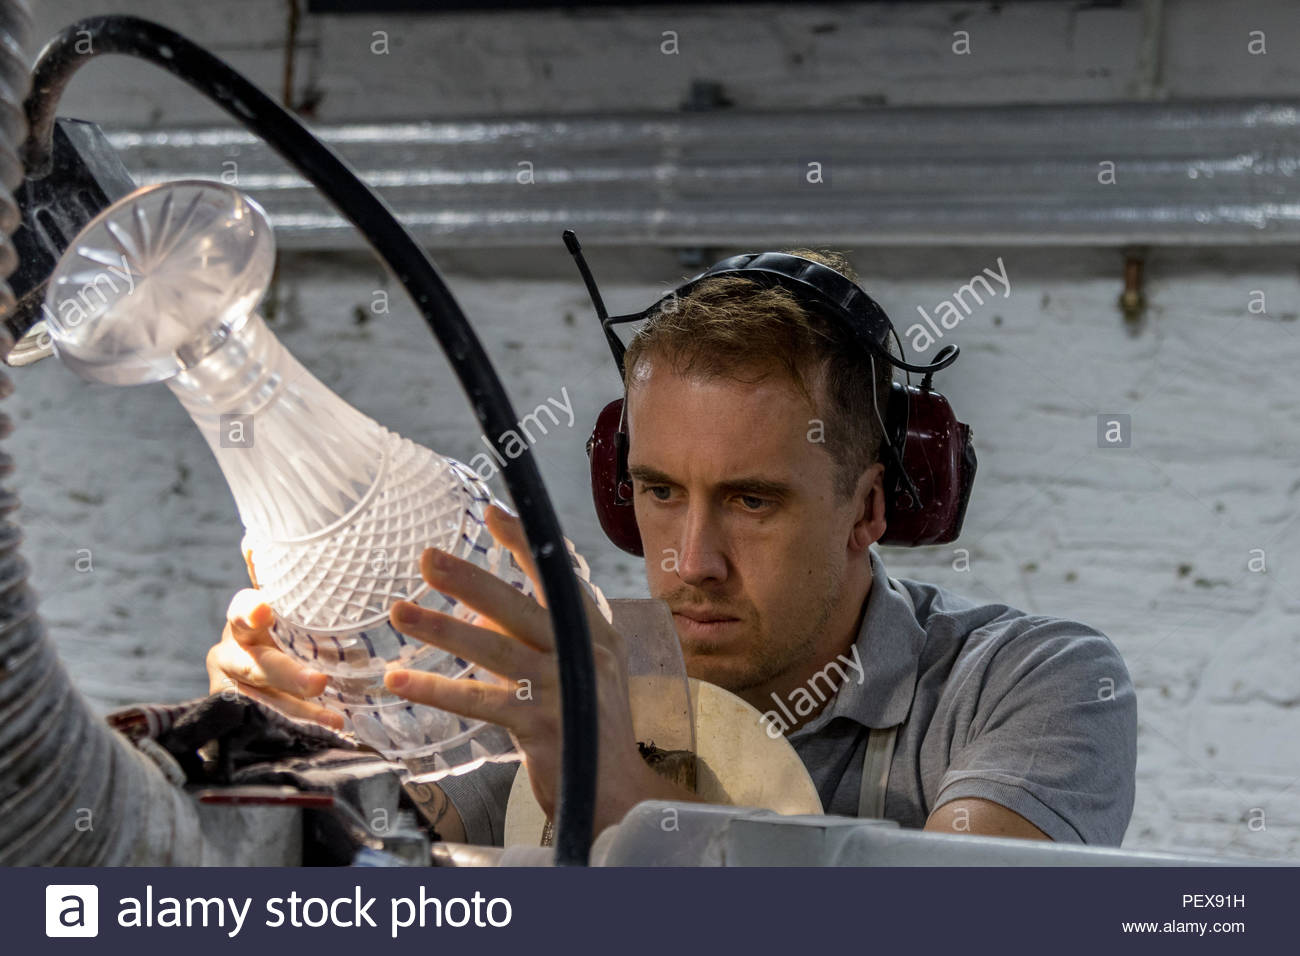 Workers in the Waterford Crystal factory in the Republic of Ireland.  A skilled engraver puts the finishing touches to a cut glass vase - Stock Image